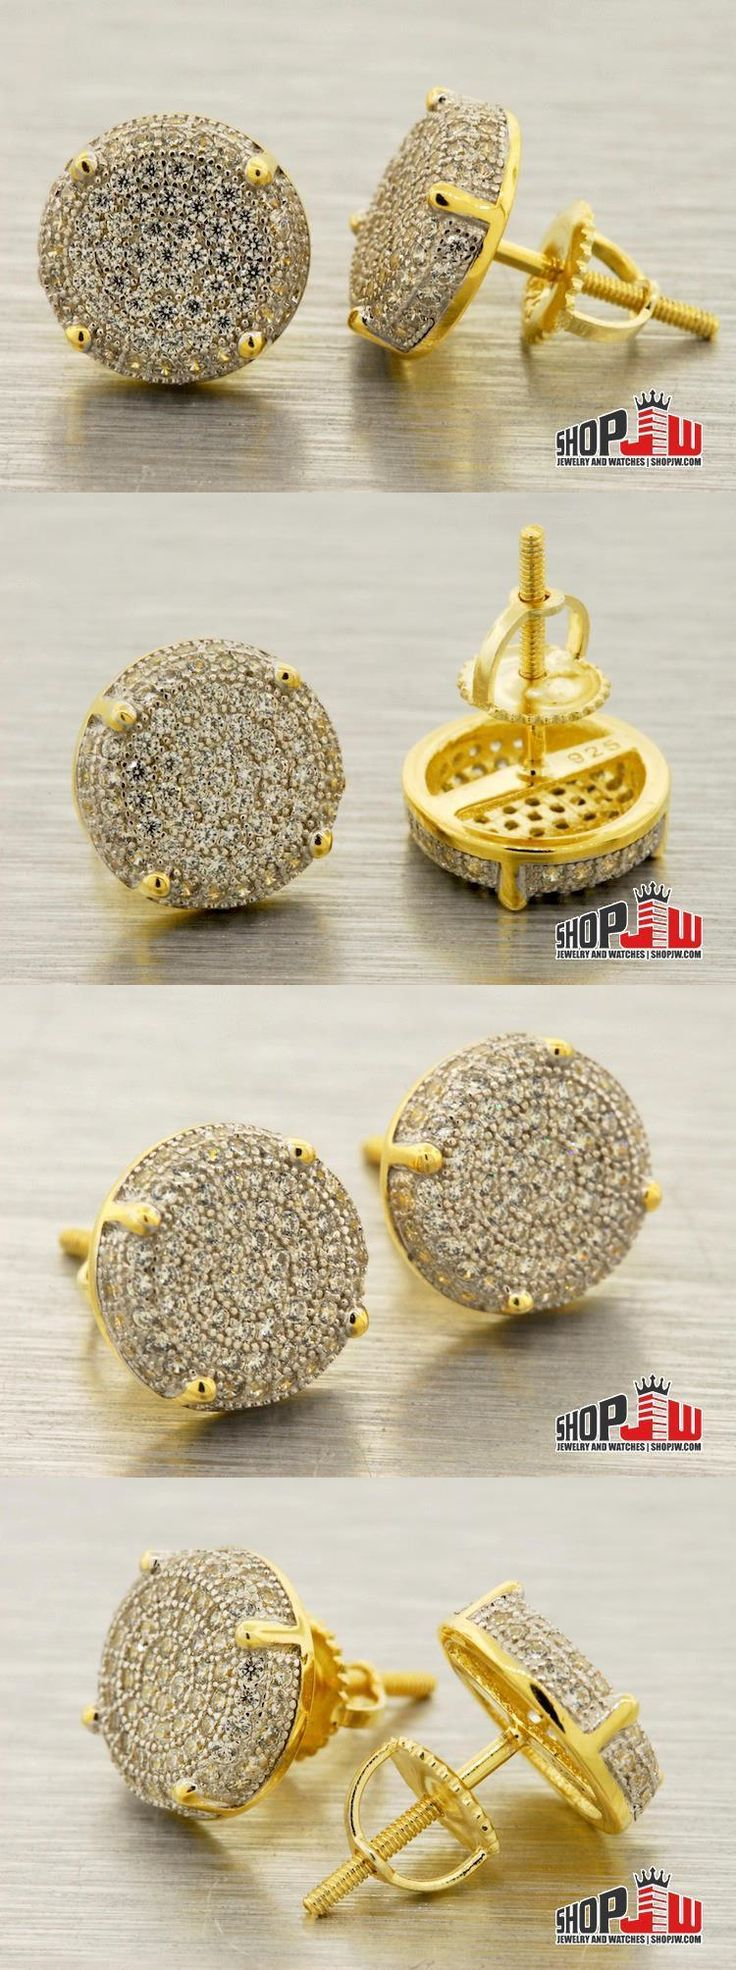 Earrings Studs 14085: Yellow Gold Finish .925 Silver Screw Back Earrings Round Micro Pave 10Mm Hip Hop -> BUY IT NOW ONLY: $35 on eBay!